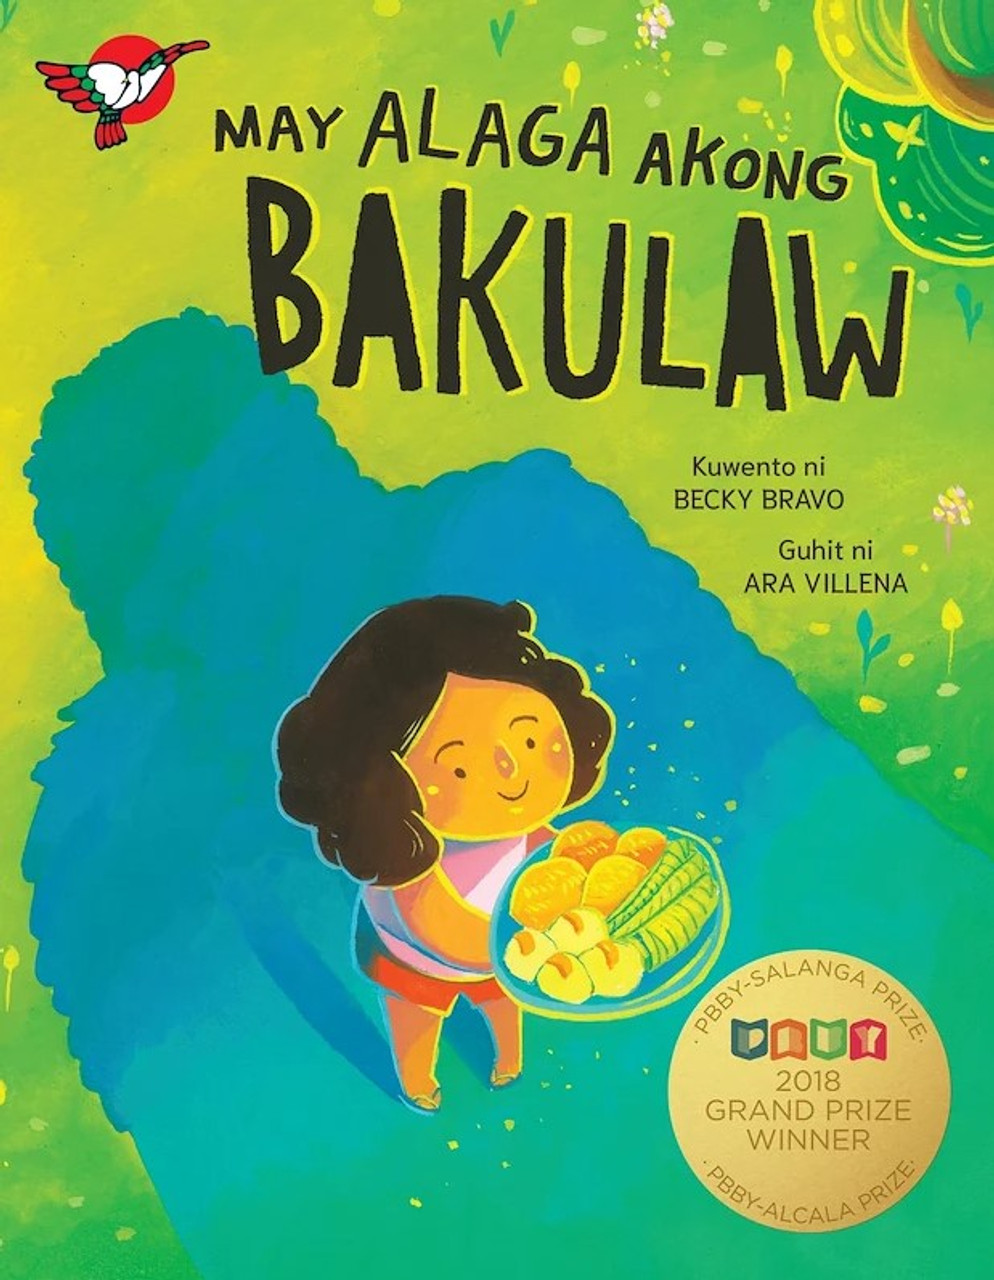 A Short Tagalog Poem for Children--- May Alaga Akong Bakulaw